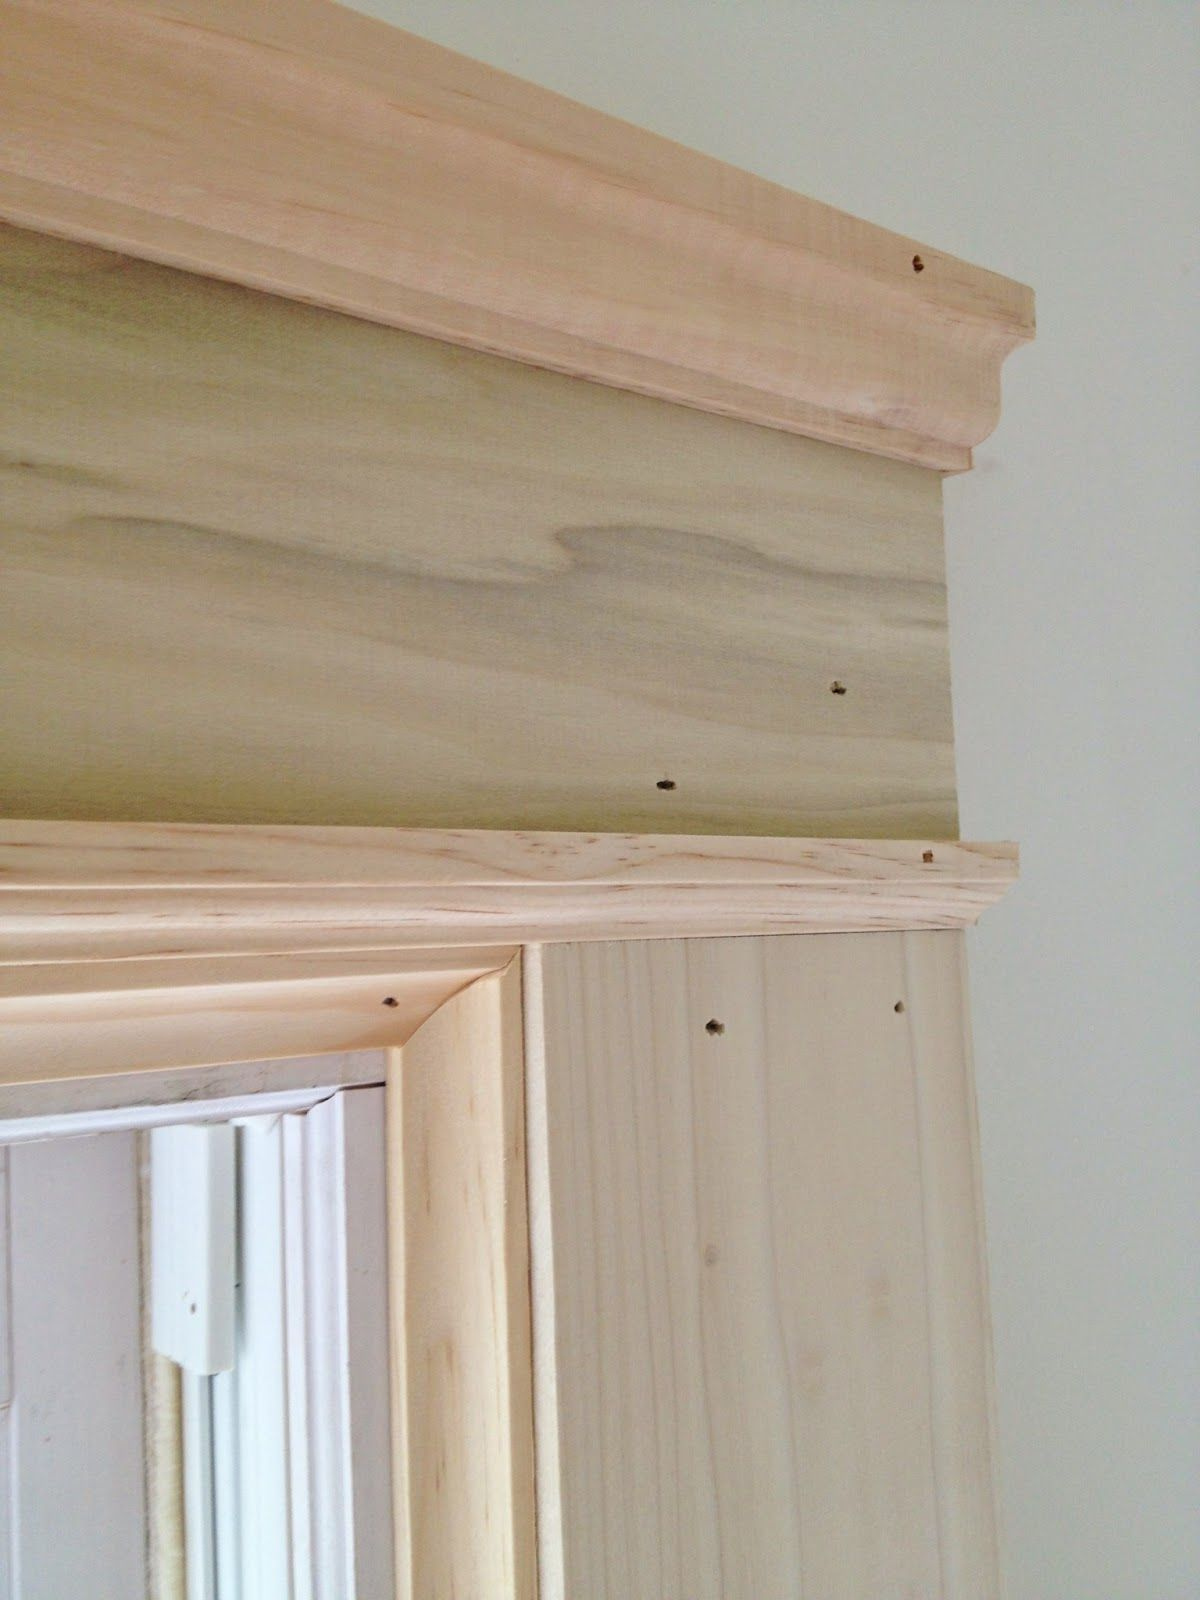 Window casing ideas  window trim ideas and styles window trim is made to cover gaps and